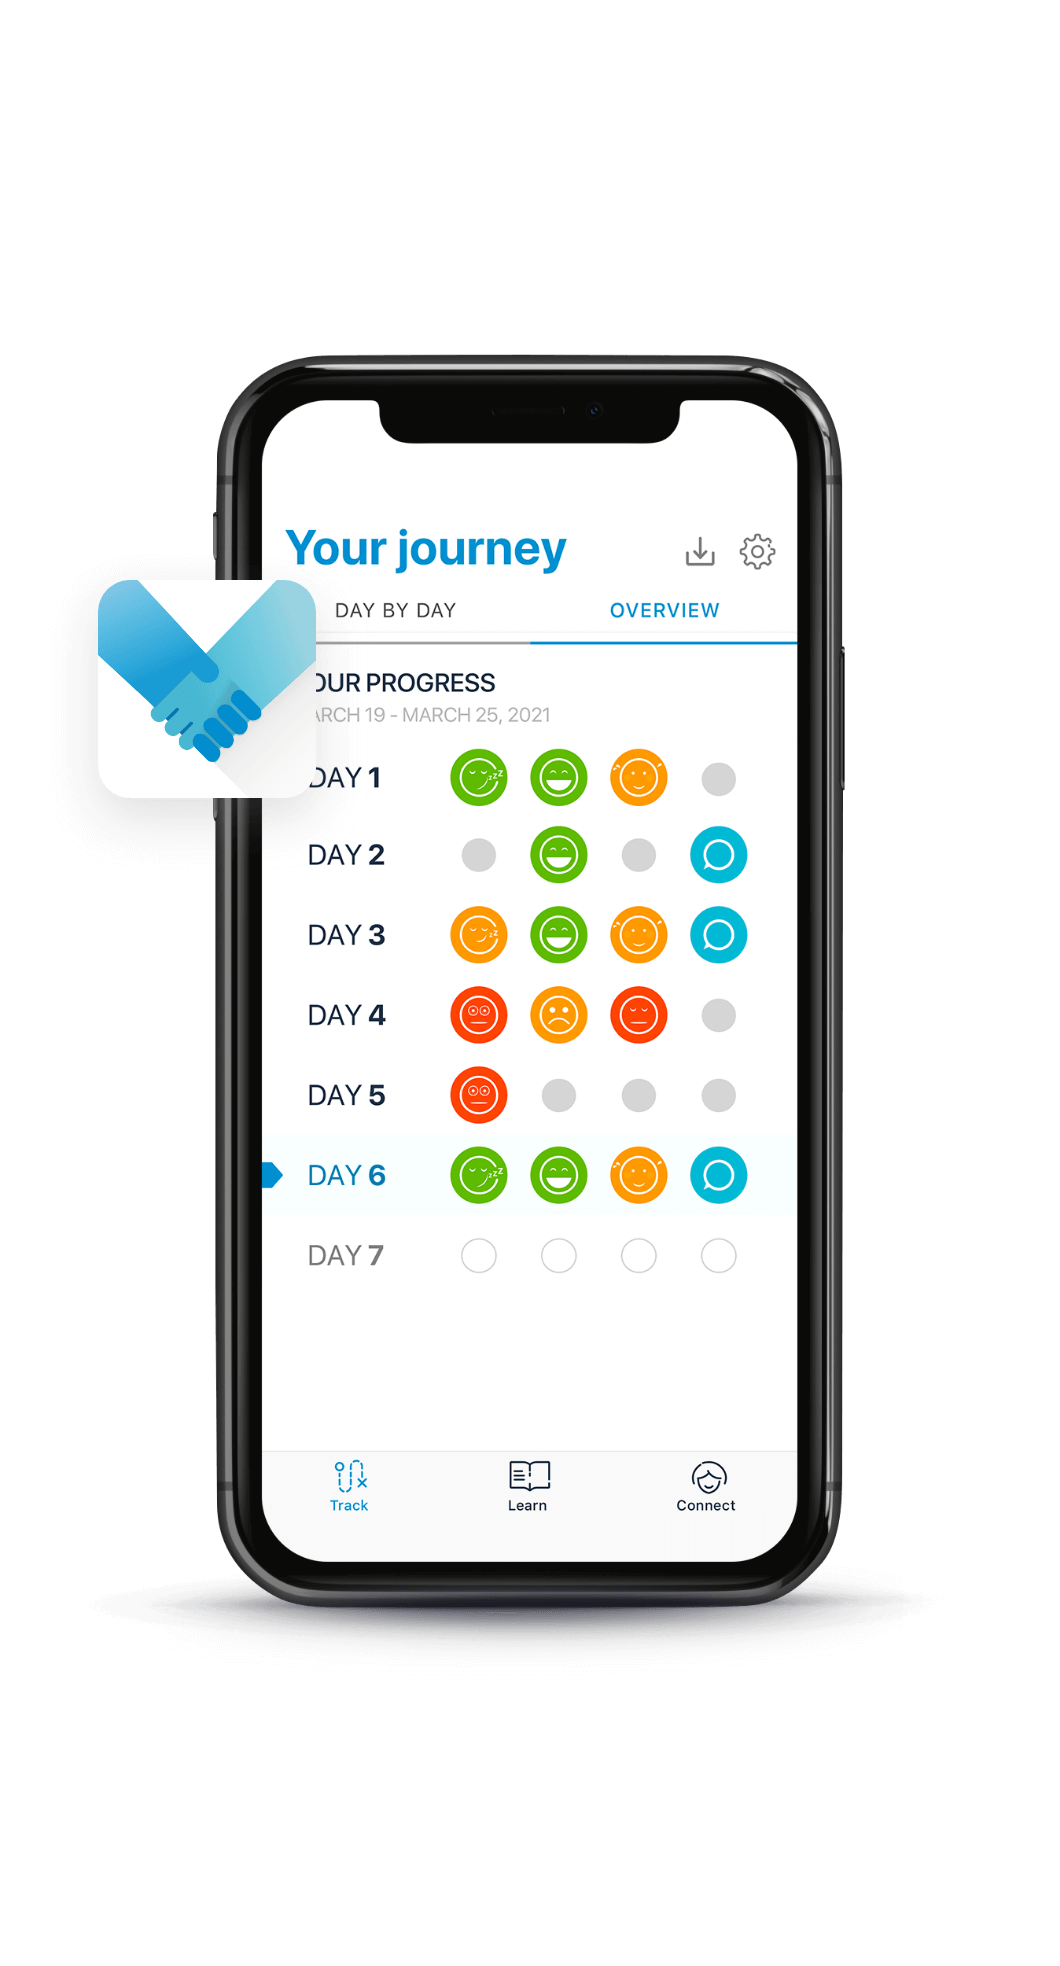 The Your Journey screen in the mySCS app.